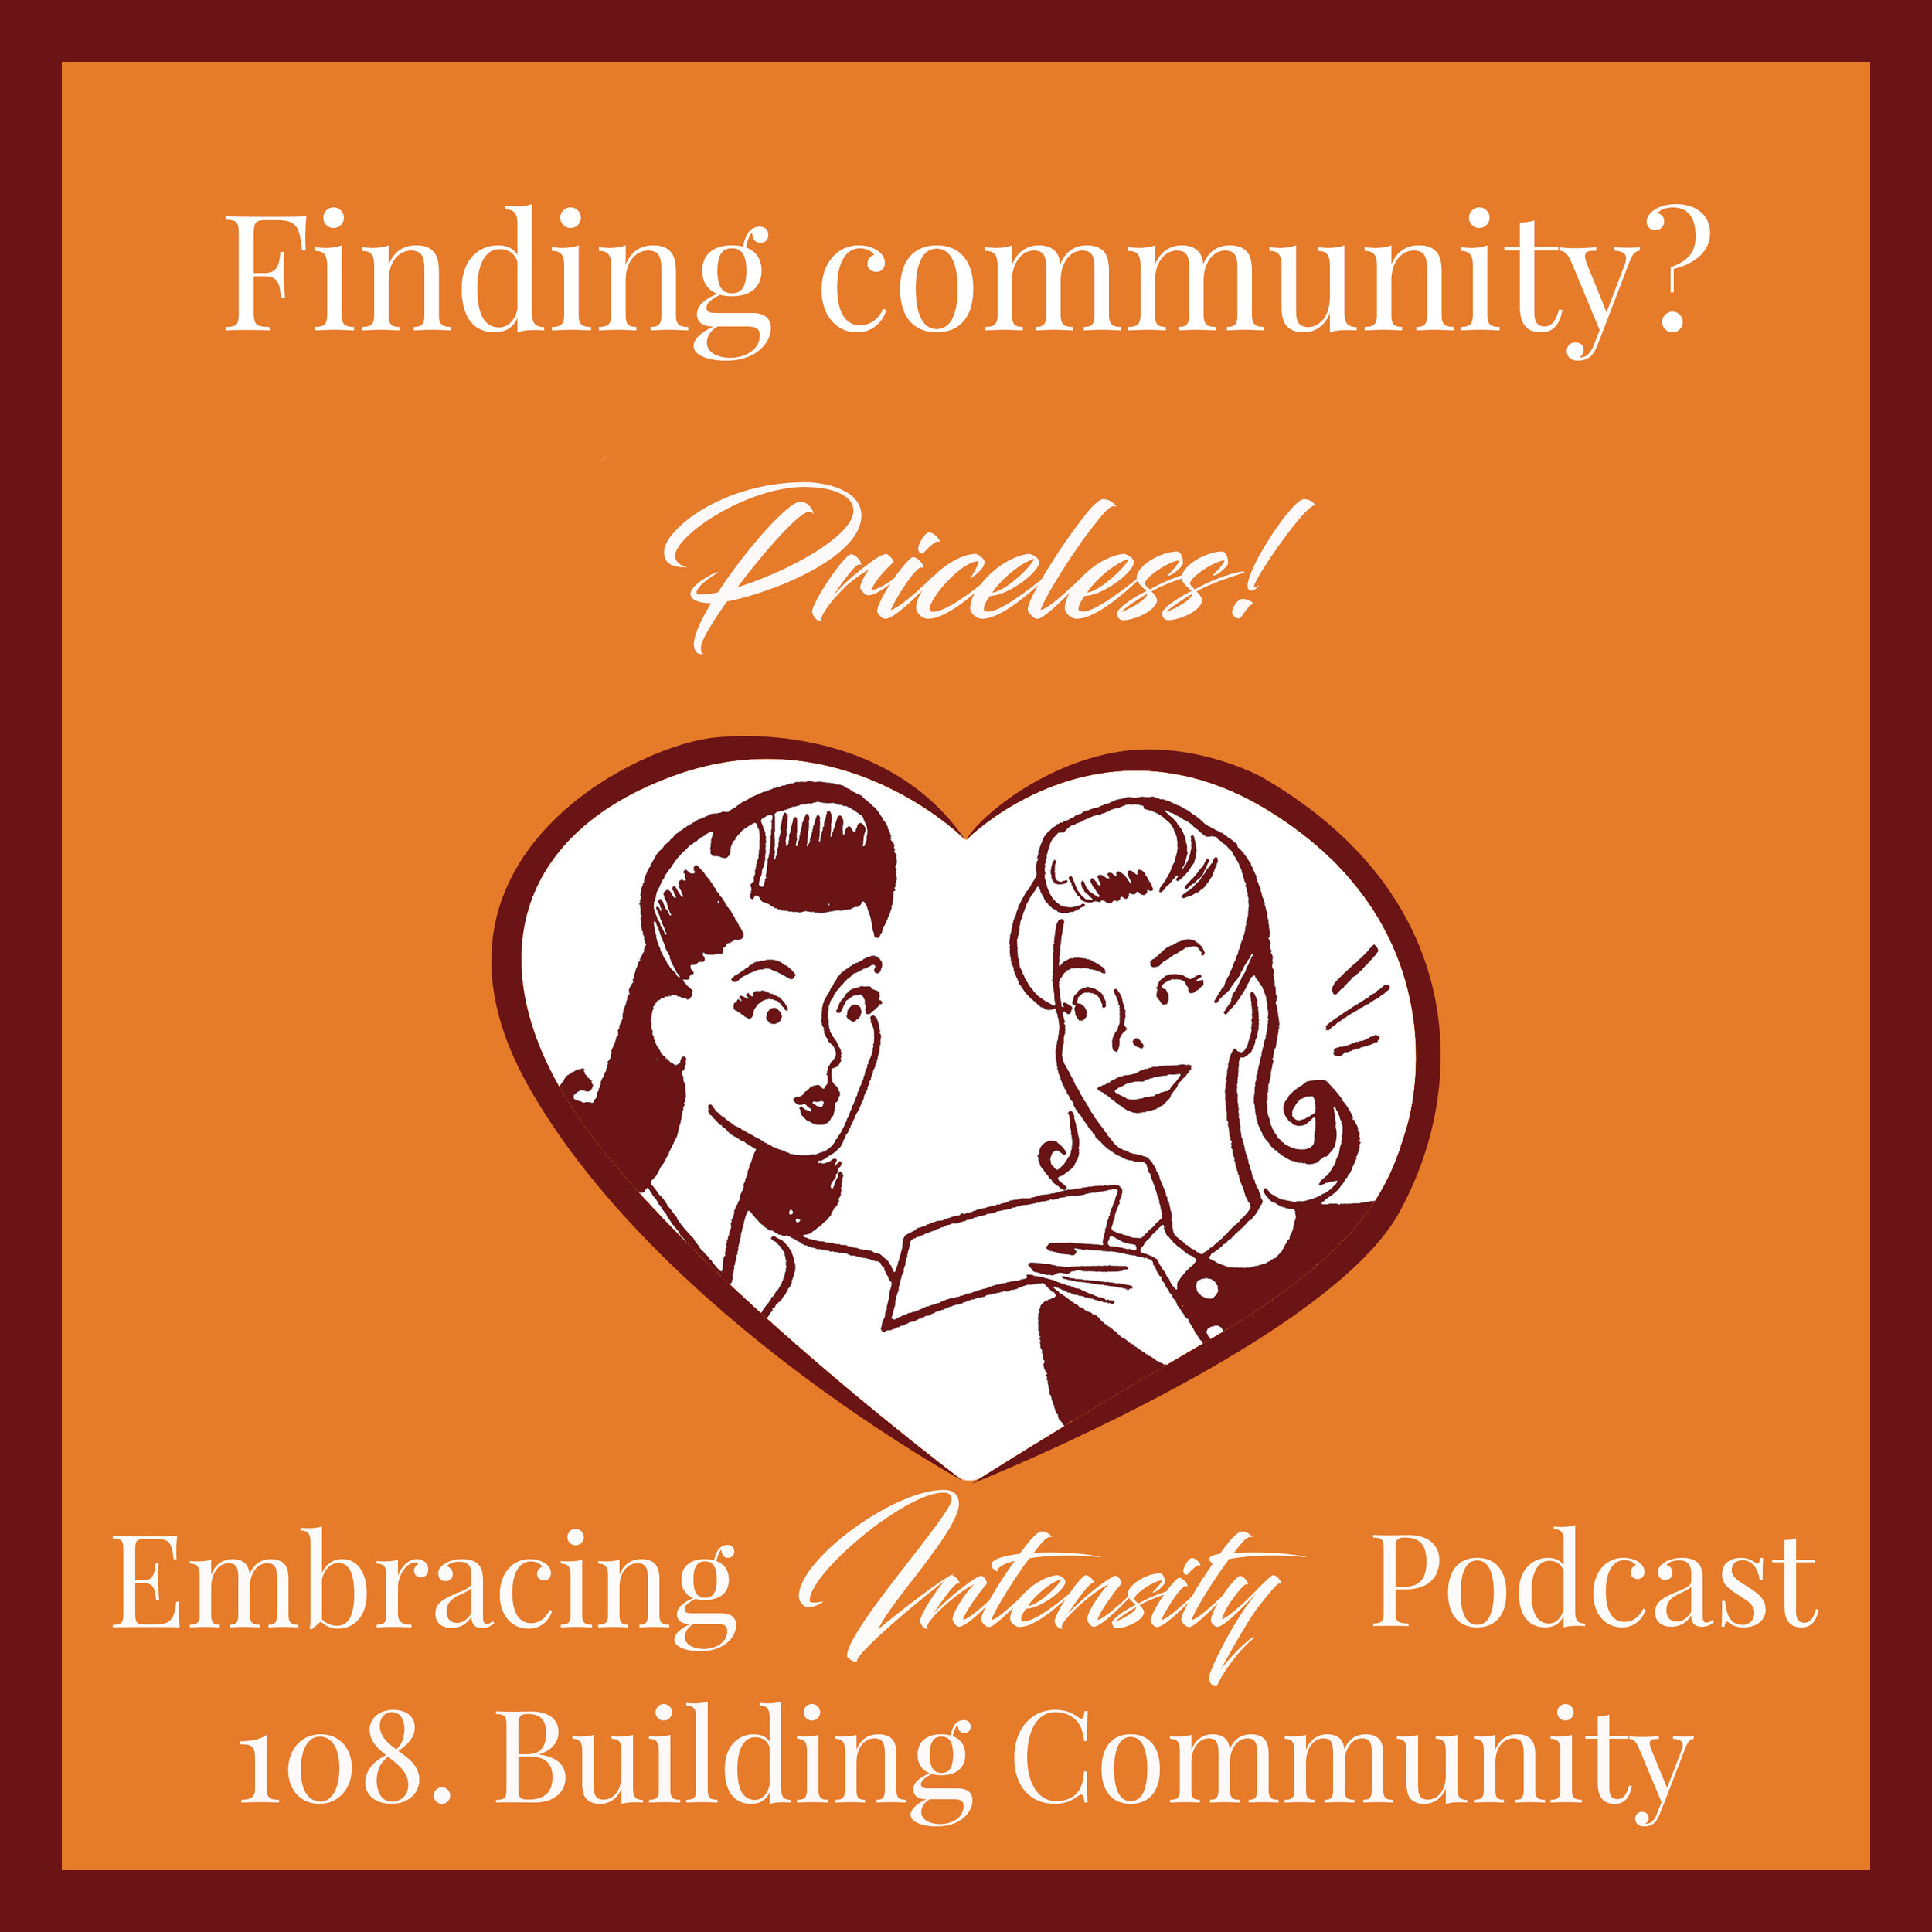 Embracing Intensity Podcast - Creating Community